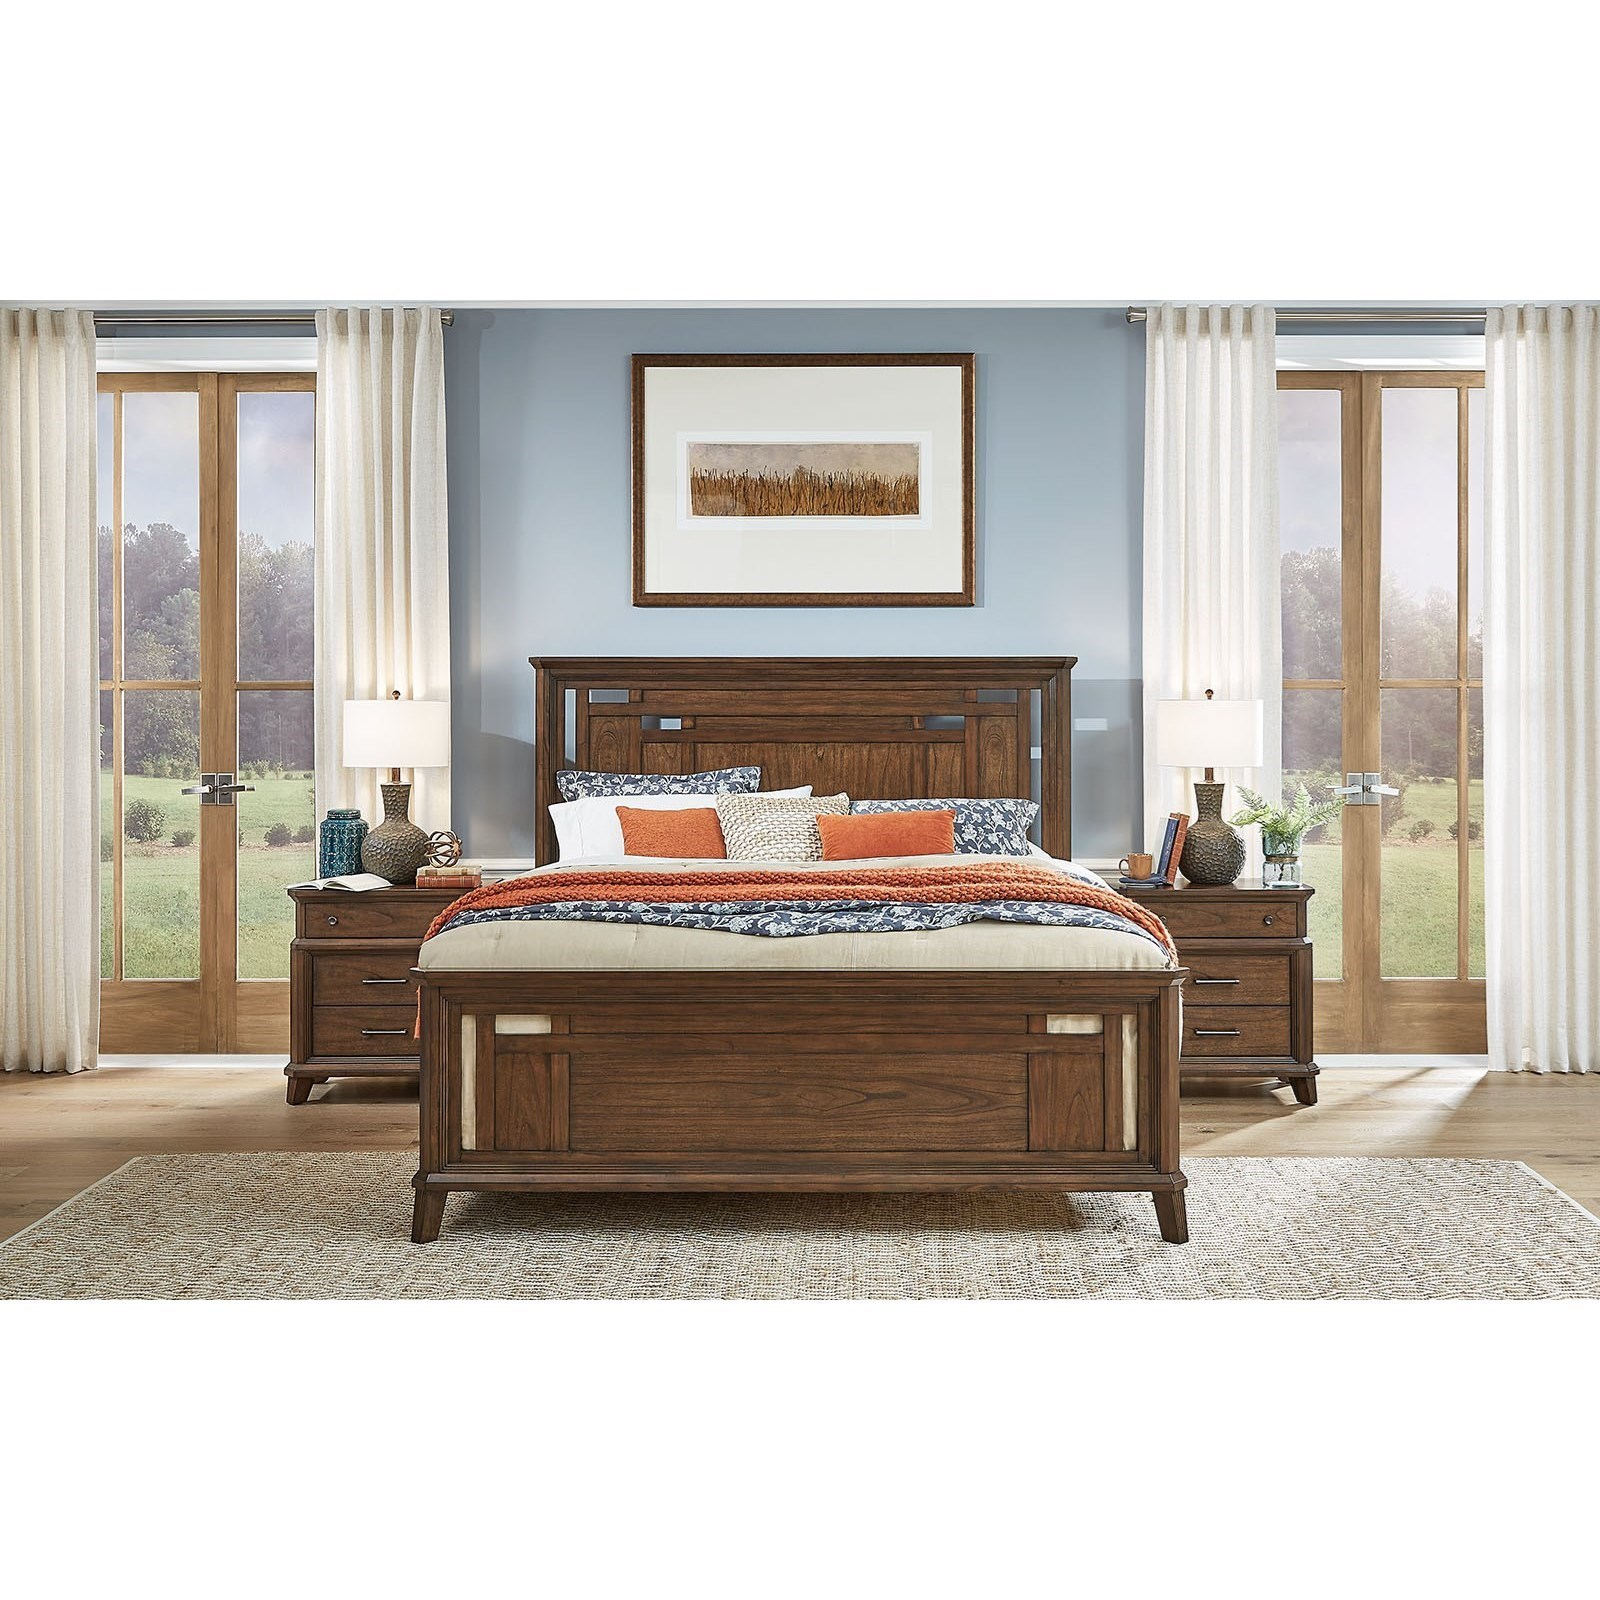 Transitional Rustic King Panel Bed